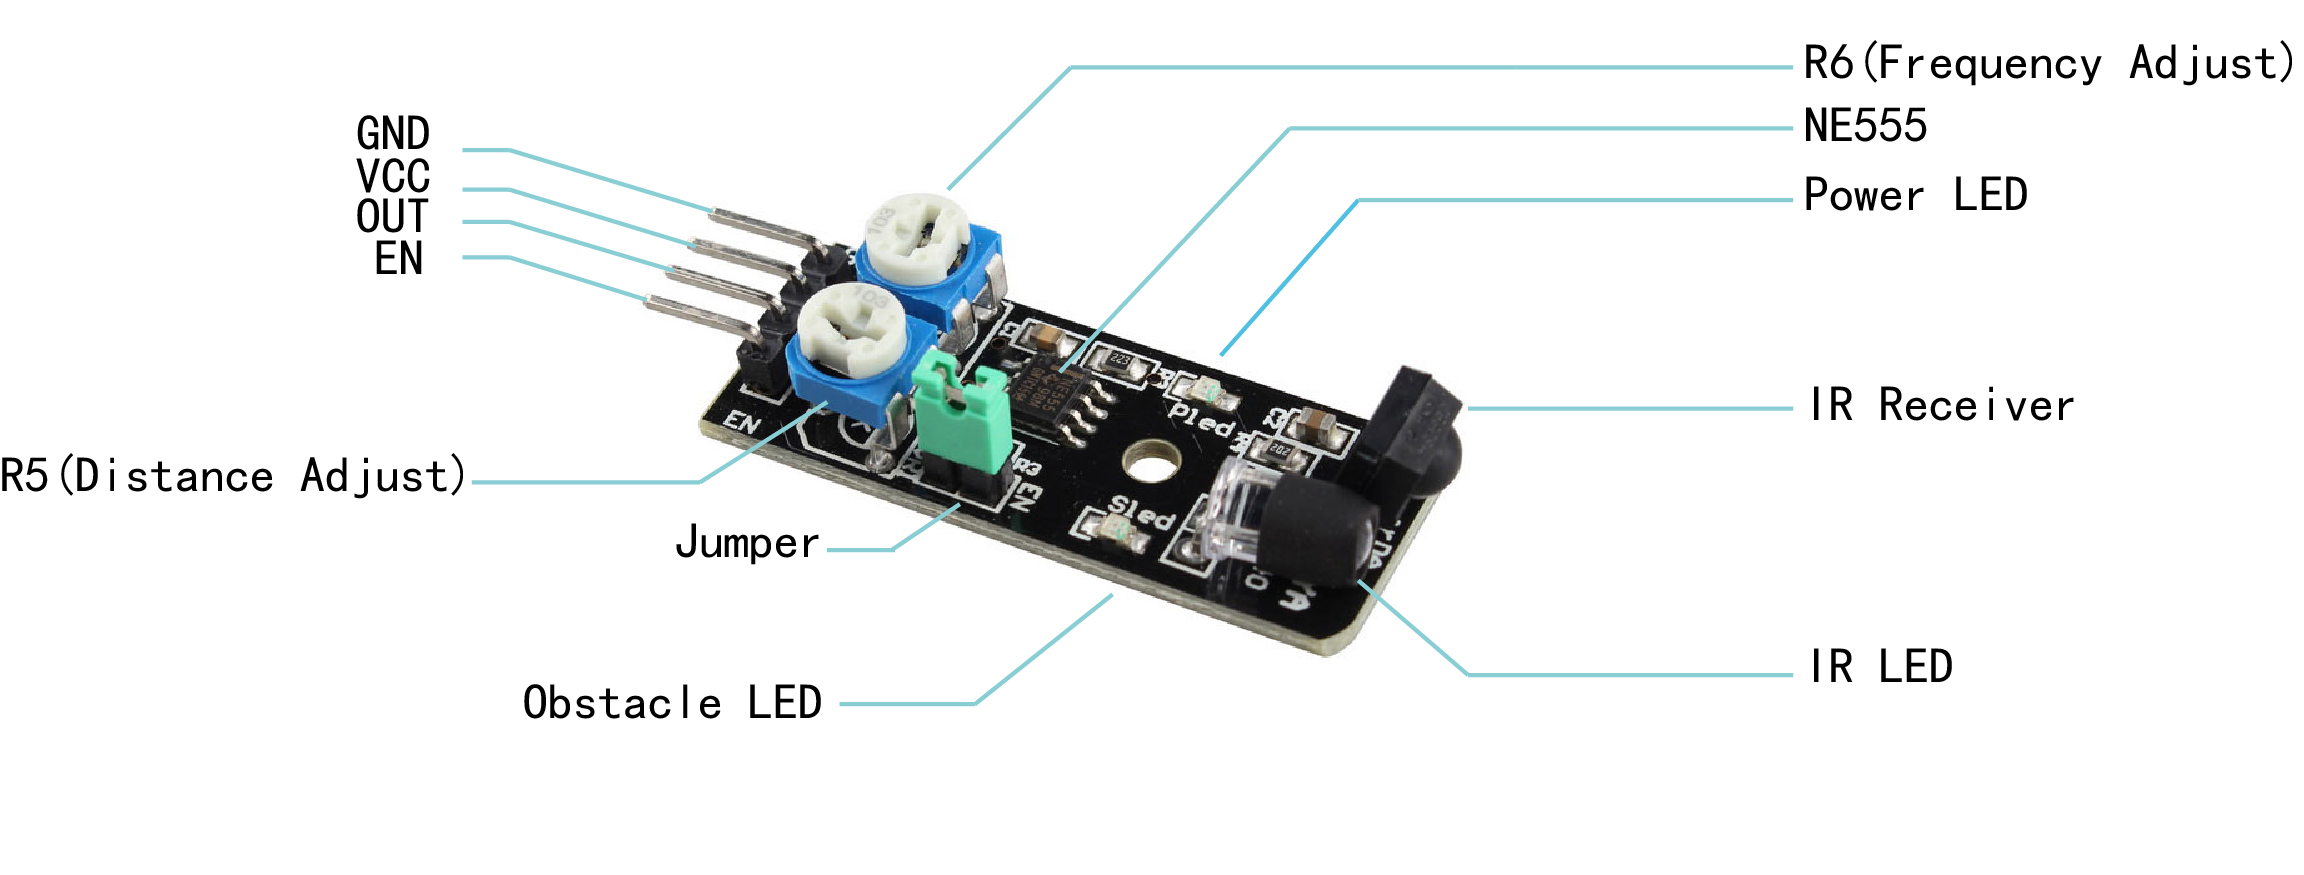 Arduino Lesson Ir Obstacle Avoidance Sensor Infraredtransmittercircuitlabeledonbreadboardjpg At The Heart Of Is An Ne555 Chip Configured To Generate A 38khz Square Wave Signal Used Illuminate Infra Red Led